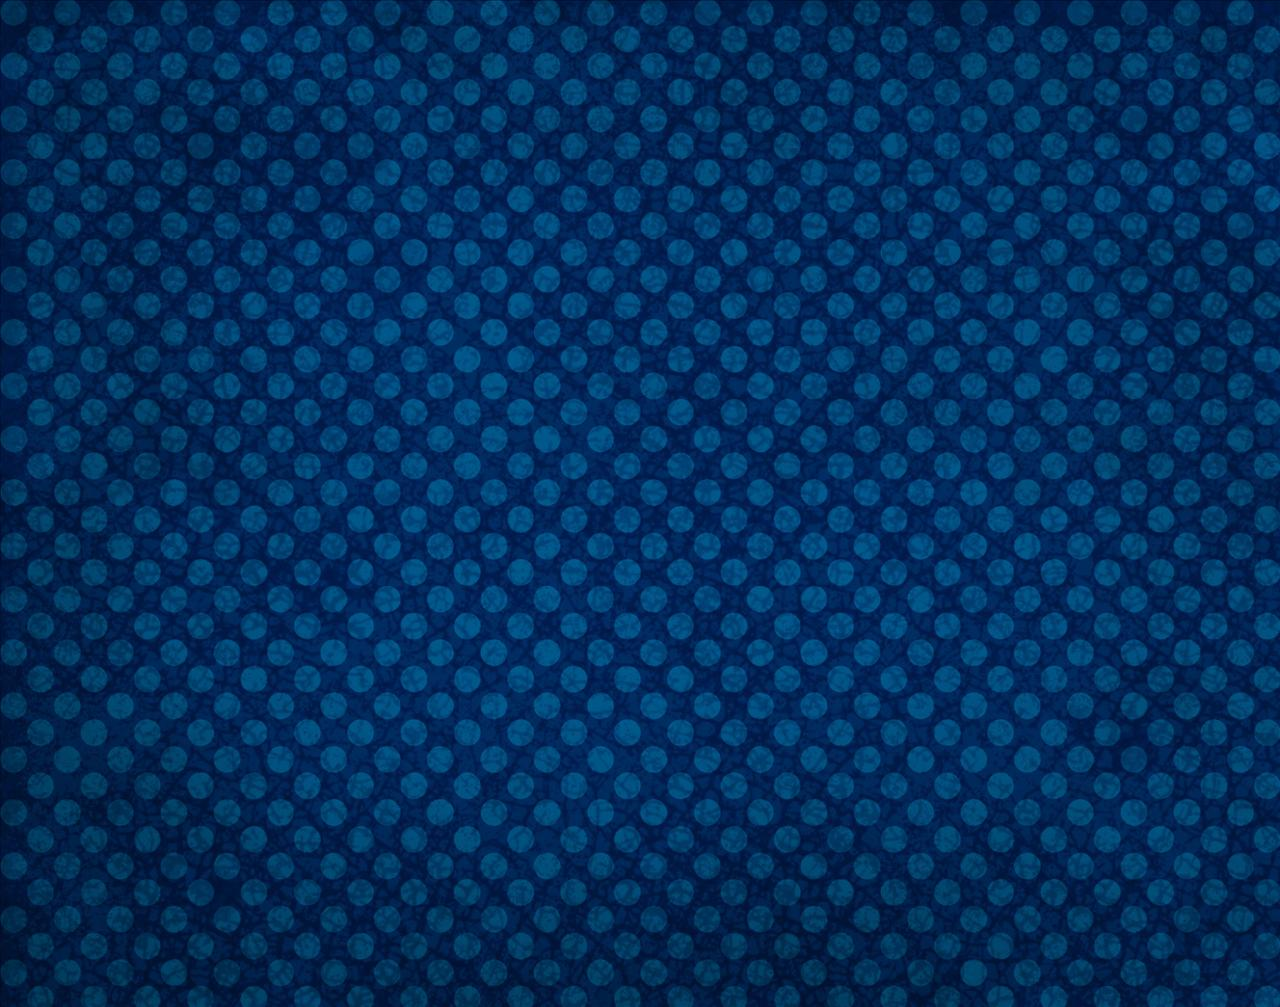 Navy blue and white wallpaper wallpapersafari for Blue and white wallpaper